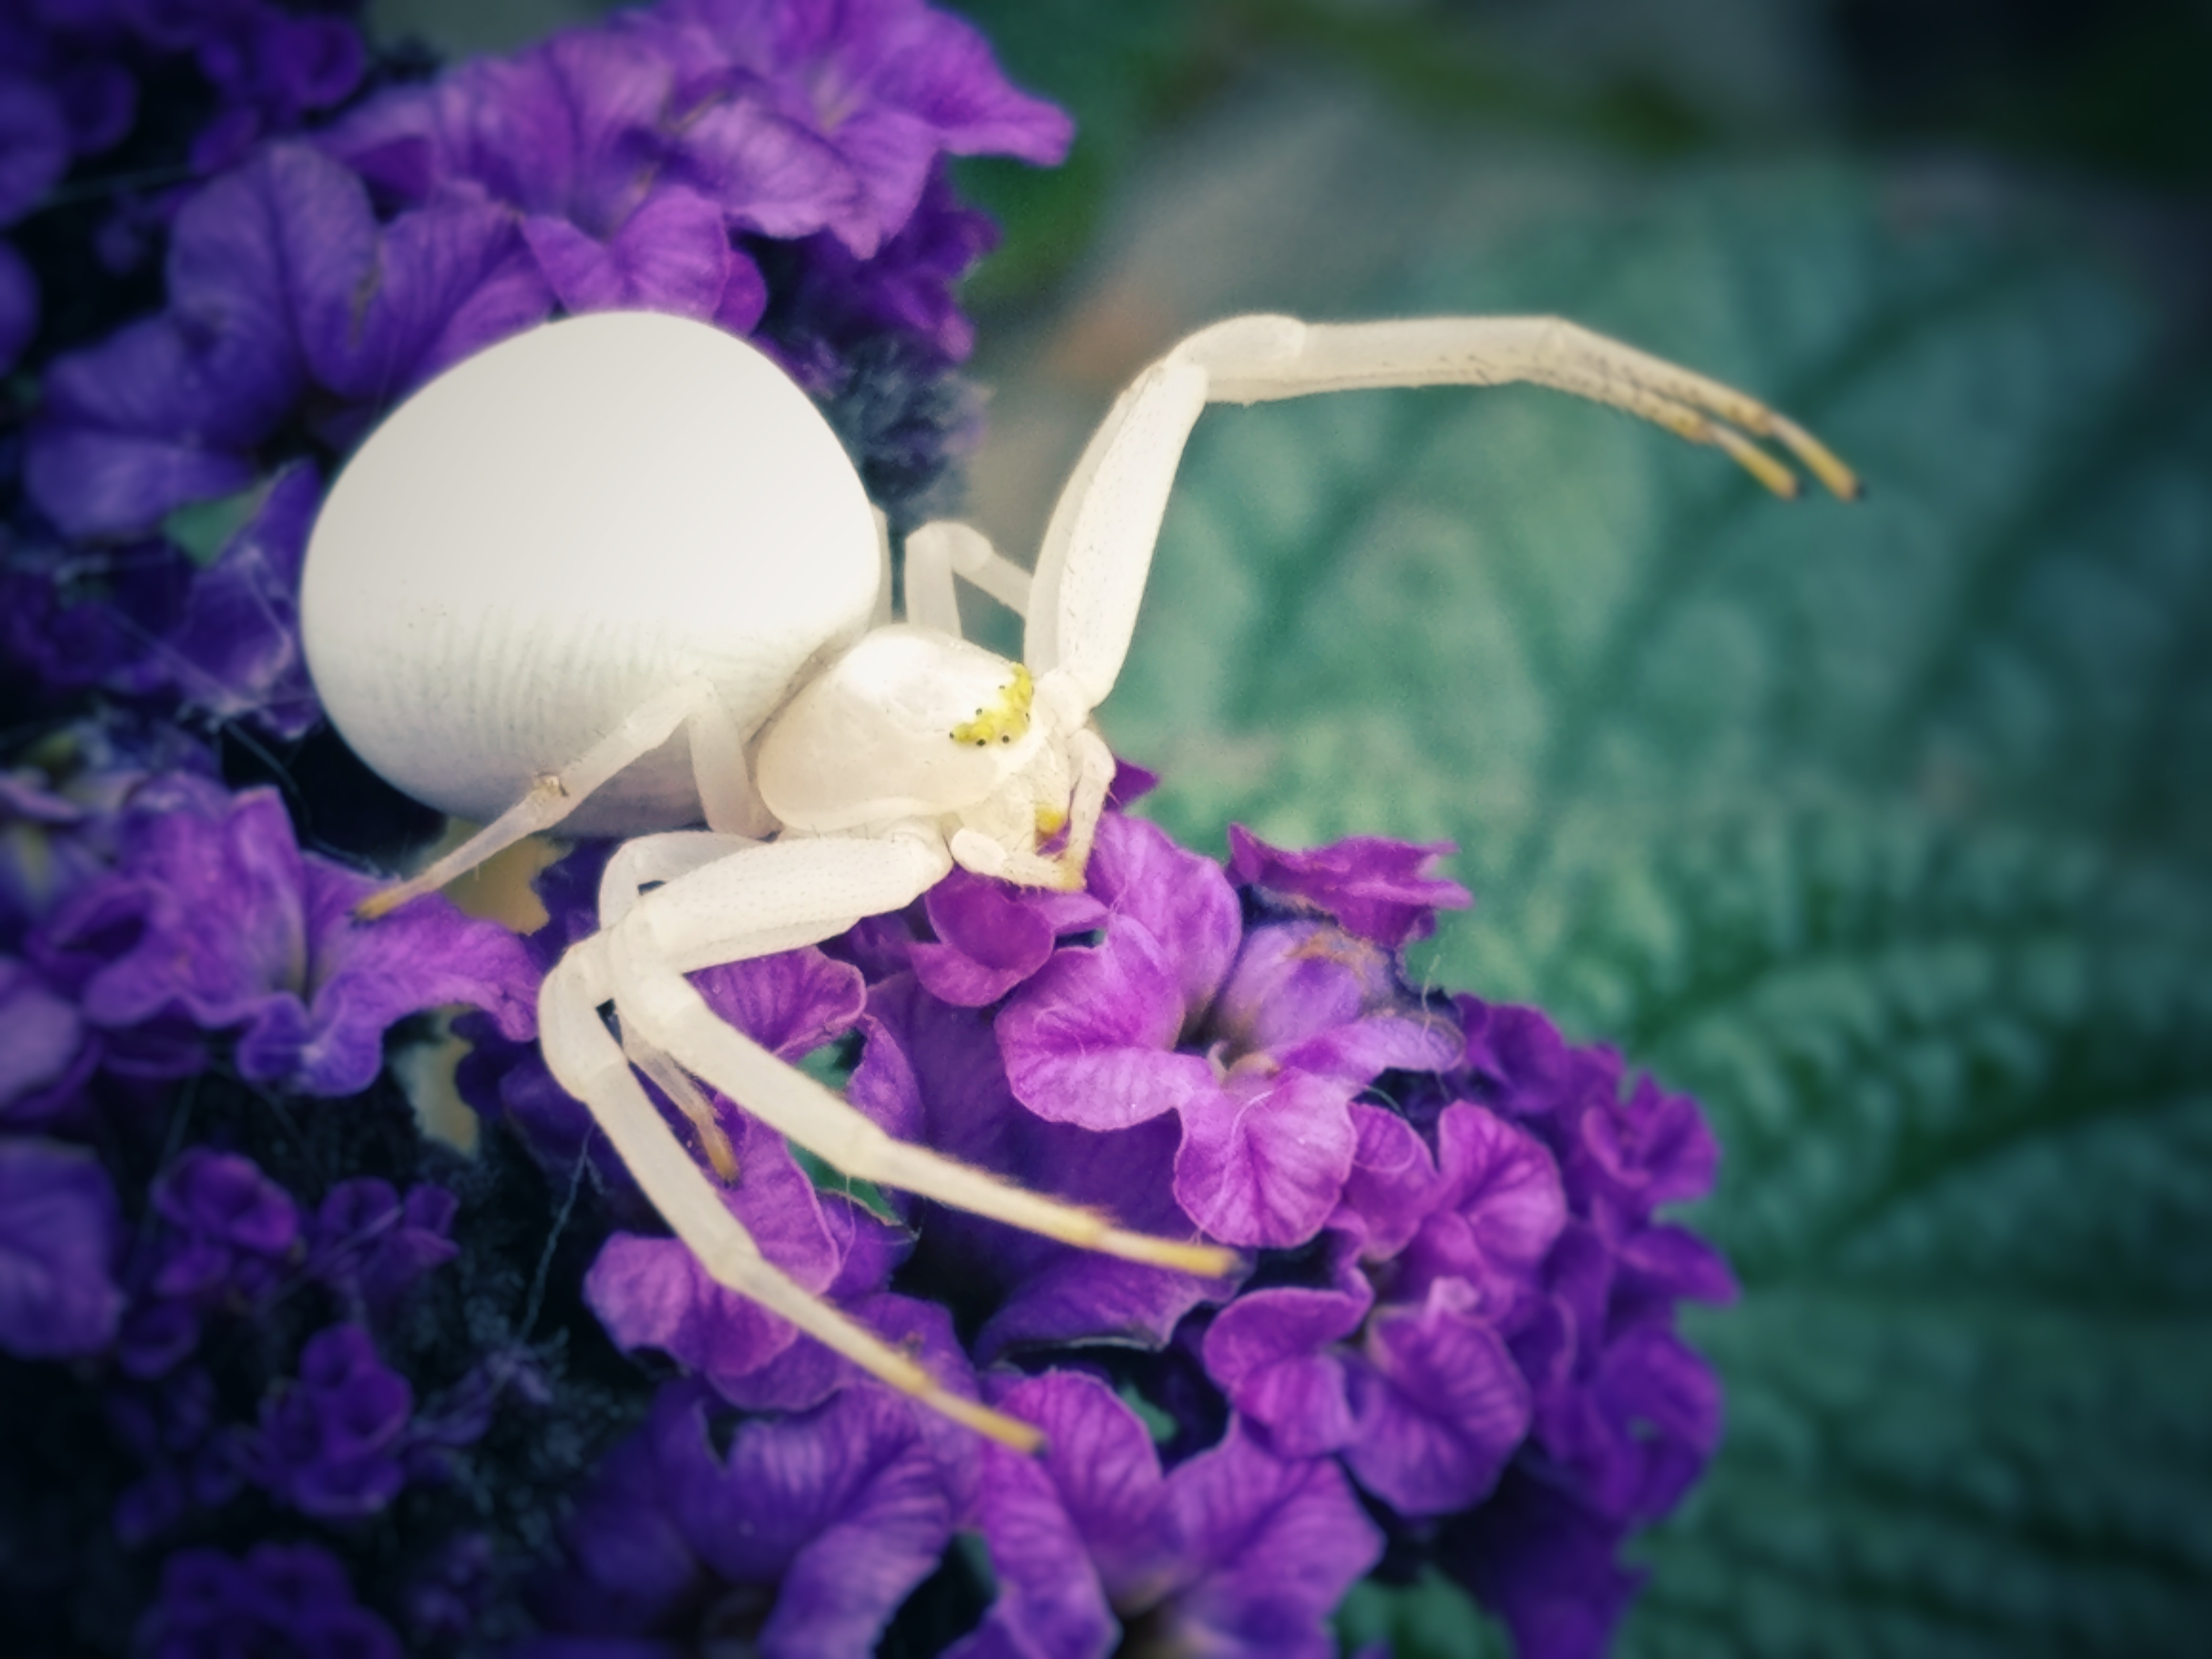 focused photo of white spider on purple flower